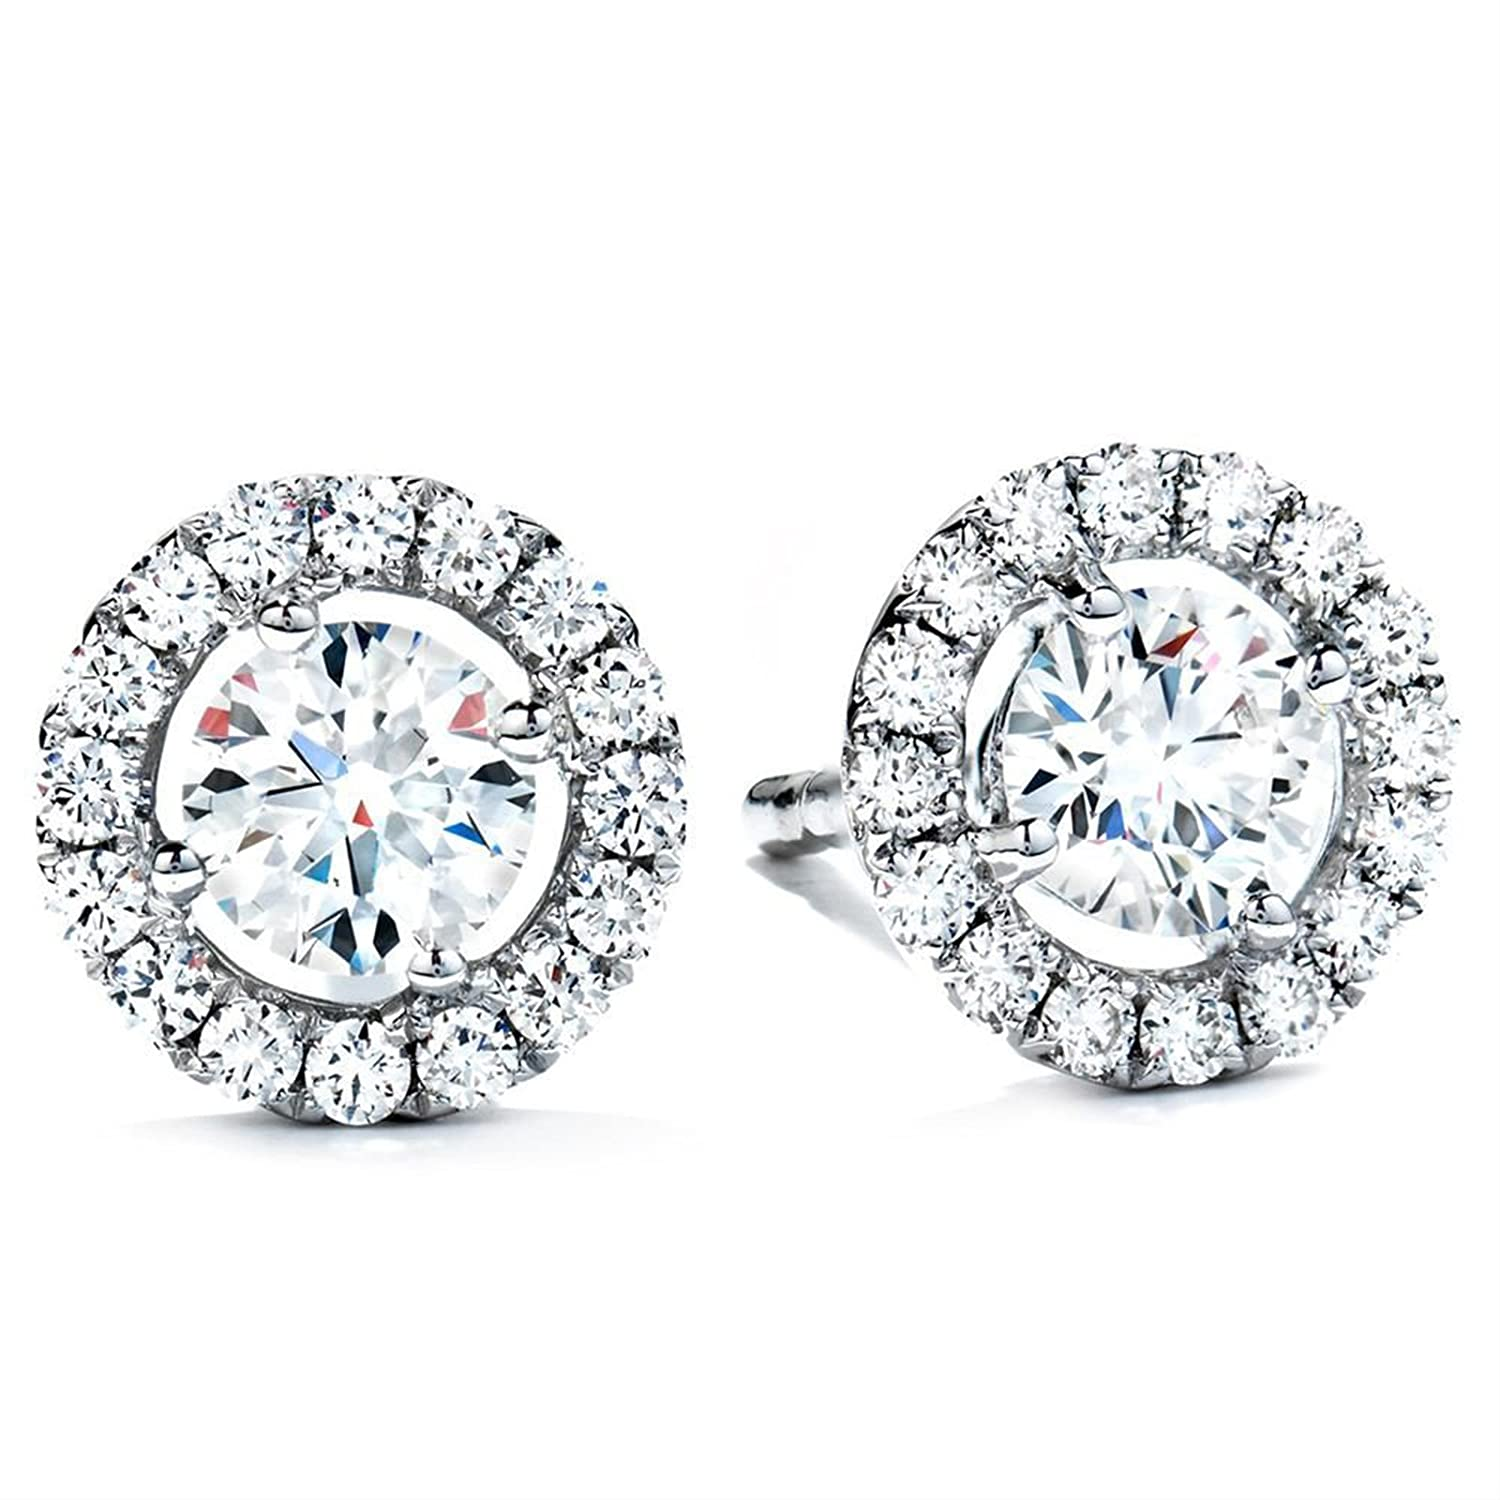 1.80 CT Simulated Diamond ROUND BRILLIANT CUT SOLITAIRE HALO Pave STUD EARRINGS 14K WHITE GOLD ScrewBack Clara Pucci CP|B4EAR|64